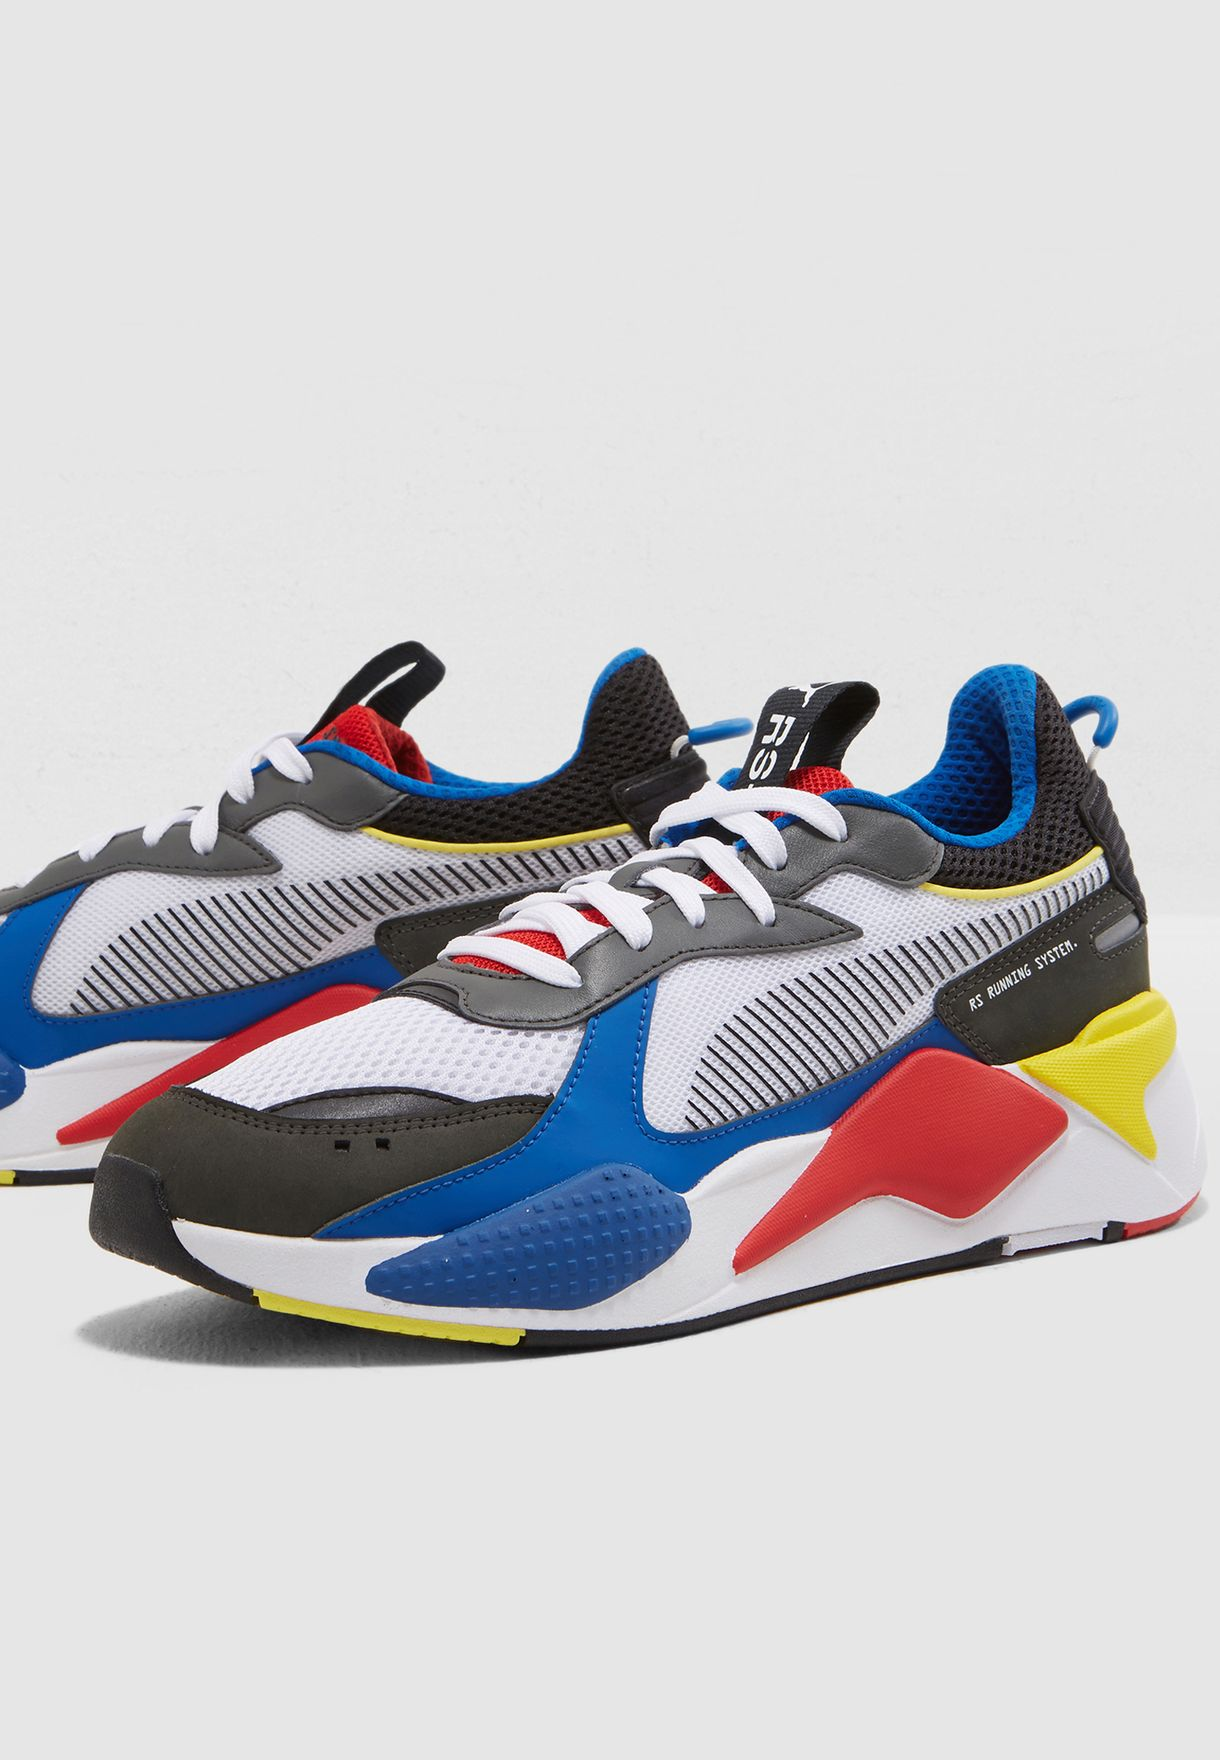 ff34c4121ffc2c Shop Puma Multicolor Youth Rs X Toys 36962802 For Kids In Qatar